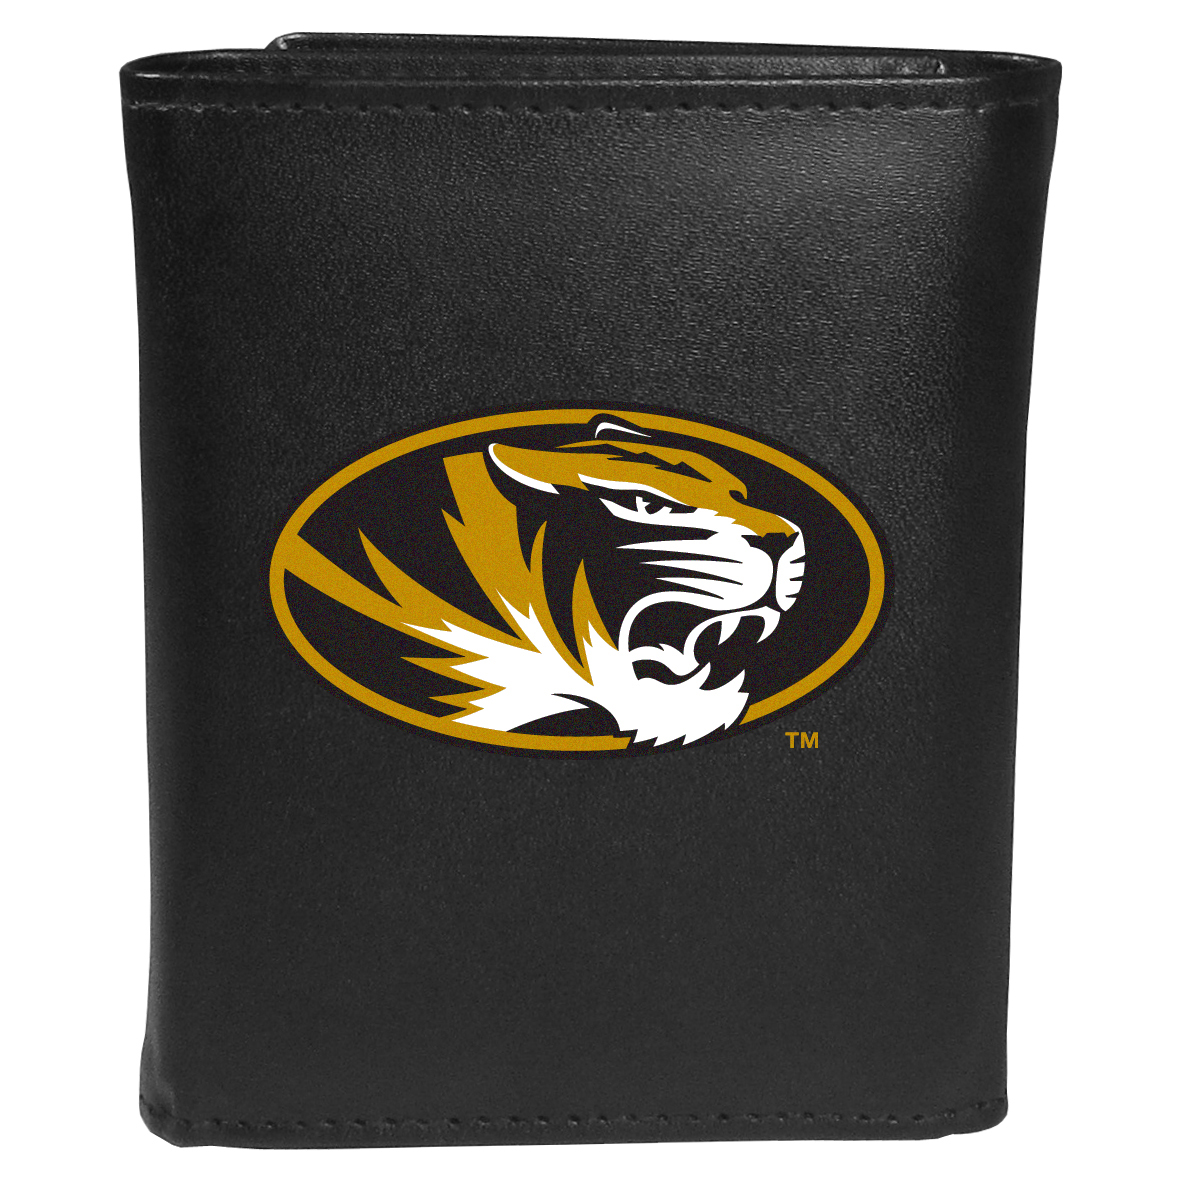 Missouri Tigers Tri-fold Wallet Large Logo - Sports fans do not have to sacrifice style with this classic tri-fold wallet that sports theMissouri Tigers?extra large logo. This men's fashion accessory has a leather grain look and expert craftmanship for a quality wallet at a great price. The wallet features inner credit card slots, windowed ID slot and a large billfold pocket. The front of the wallet features an extra large printed team logo.